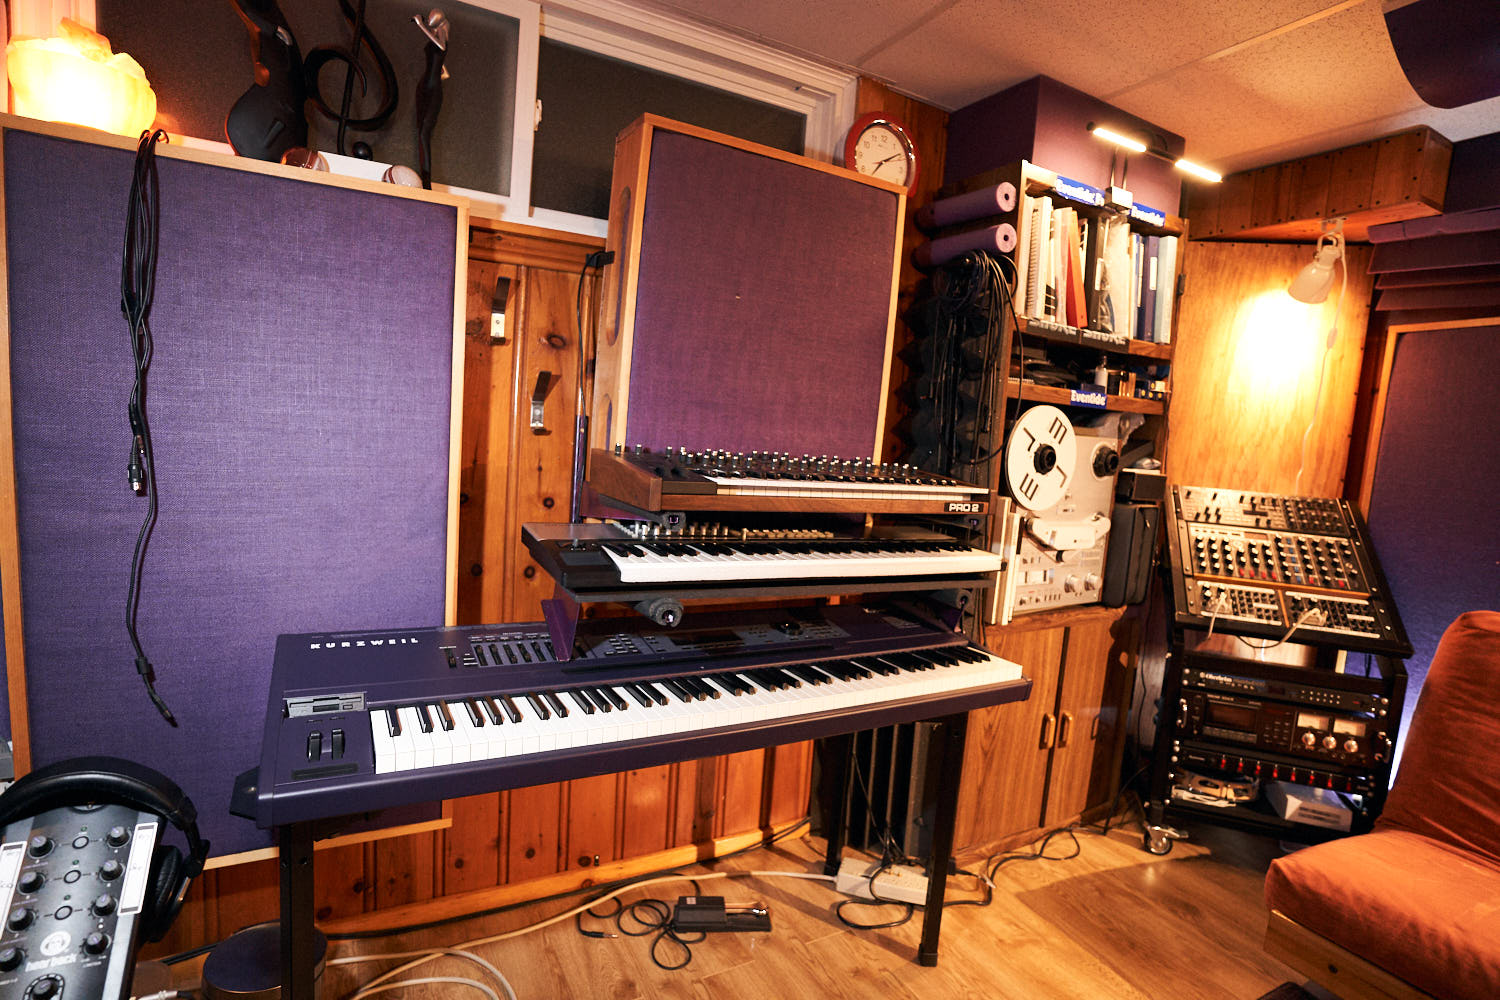 Keyboards and synths for music production